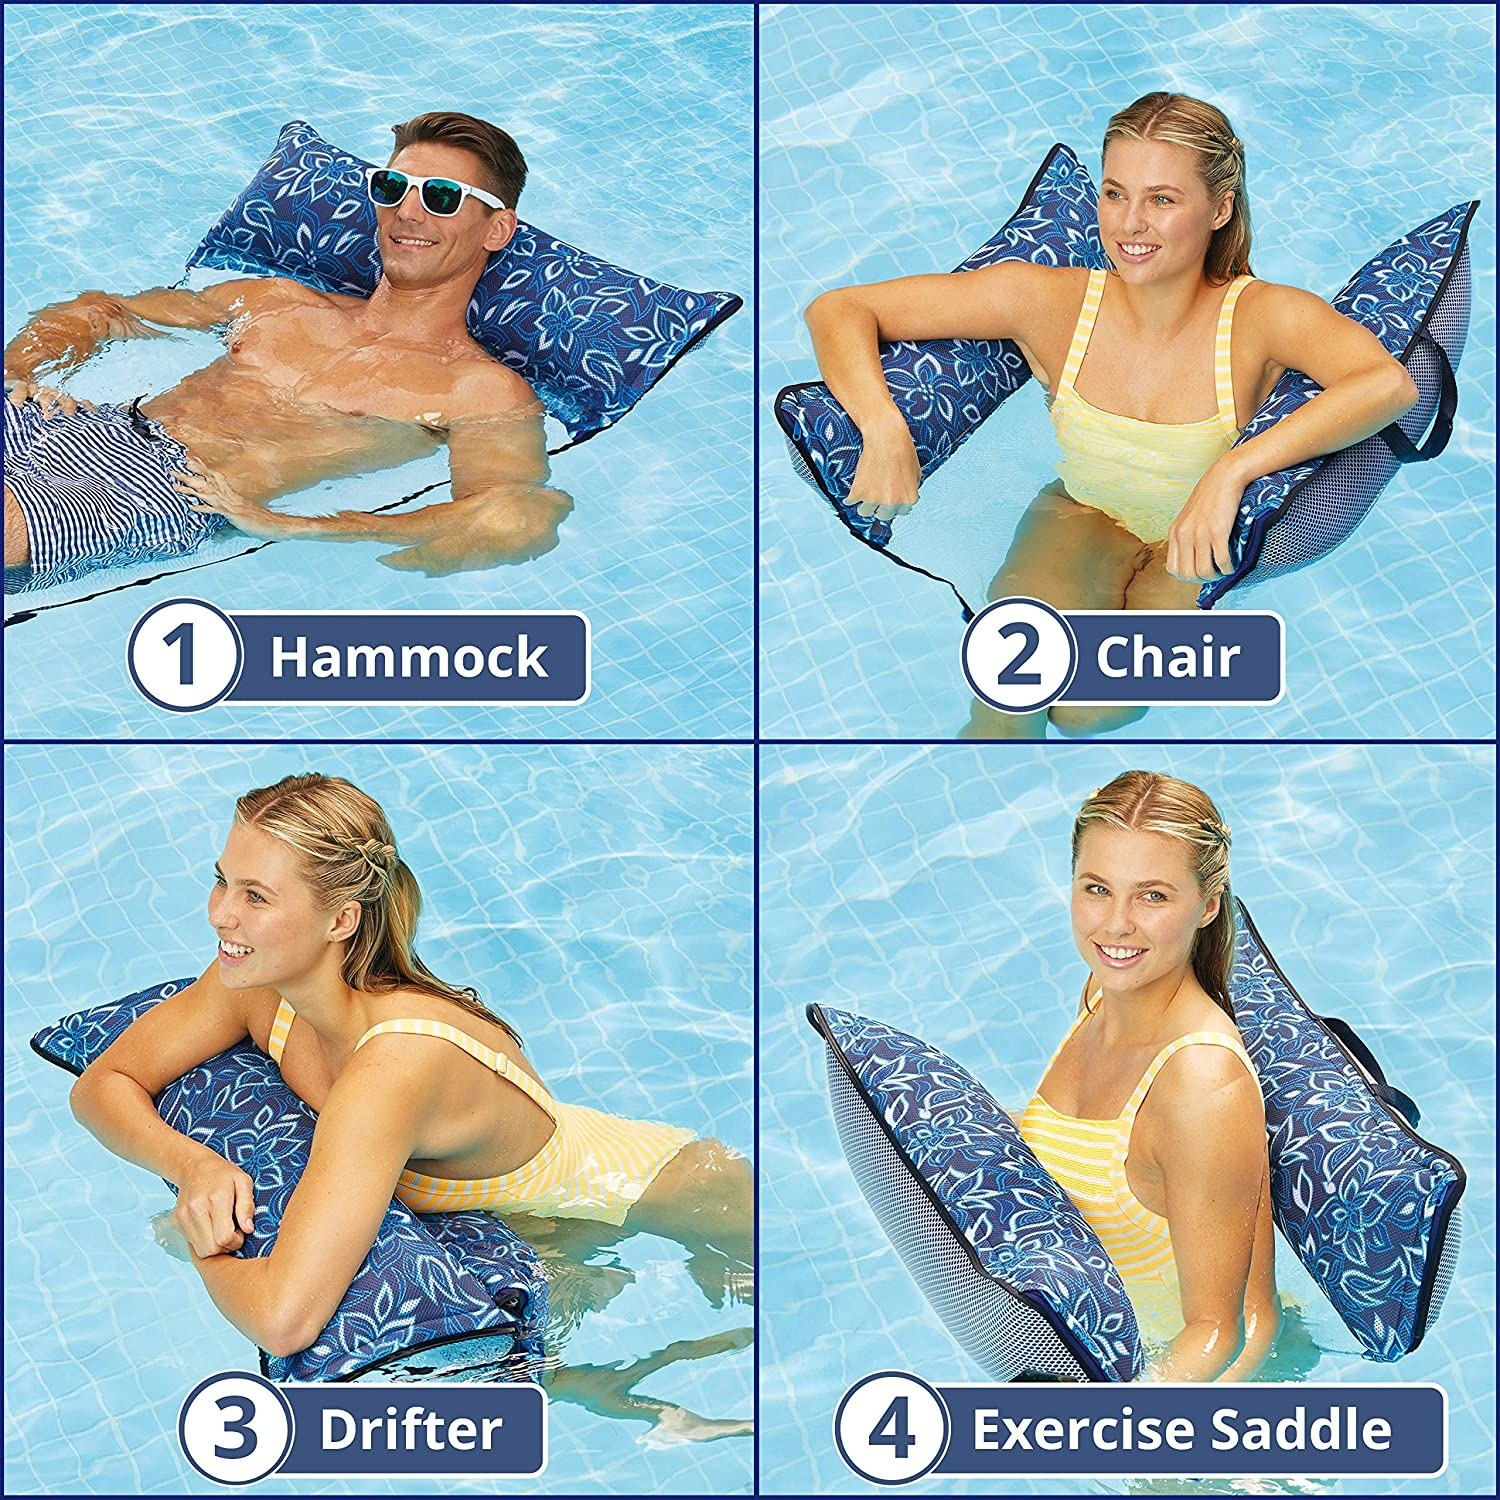 models show four ways to use the hammock: a bed, a chair, something to lean on like driftwood, or an exercise saddle